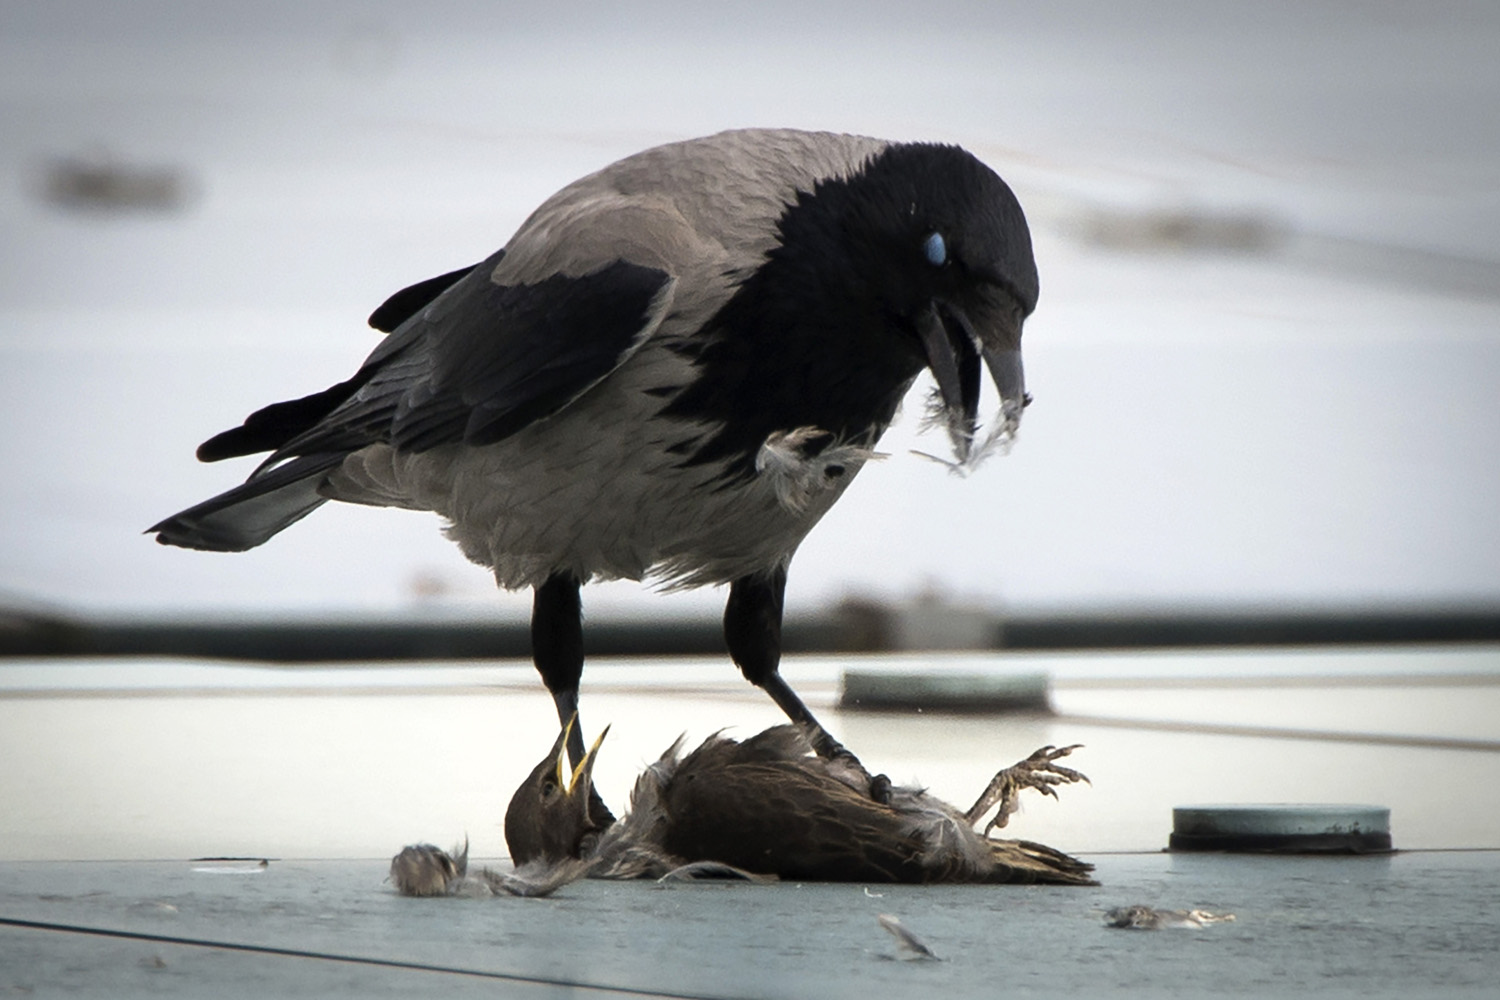 May 6, 2014. A crow eats it's prey sitting on the roof of the Chancellery in Berlin.